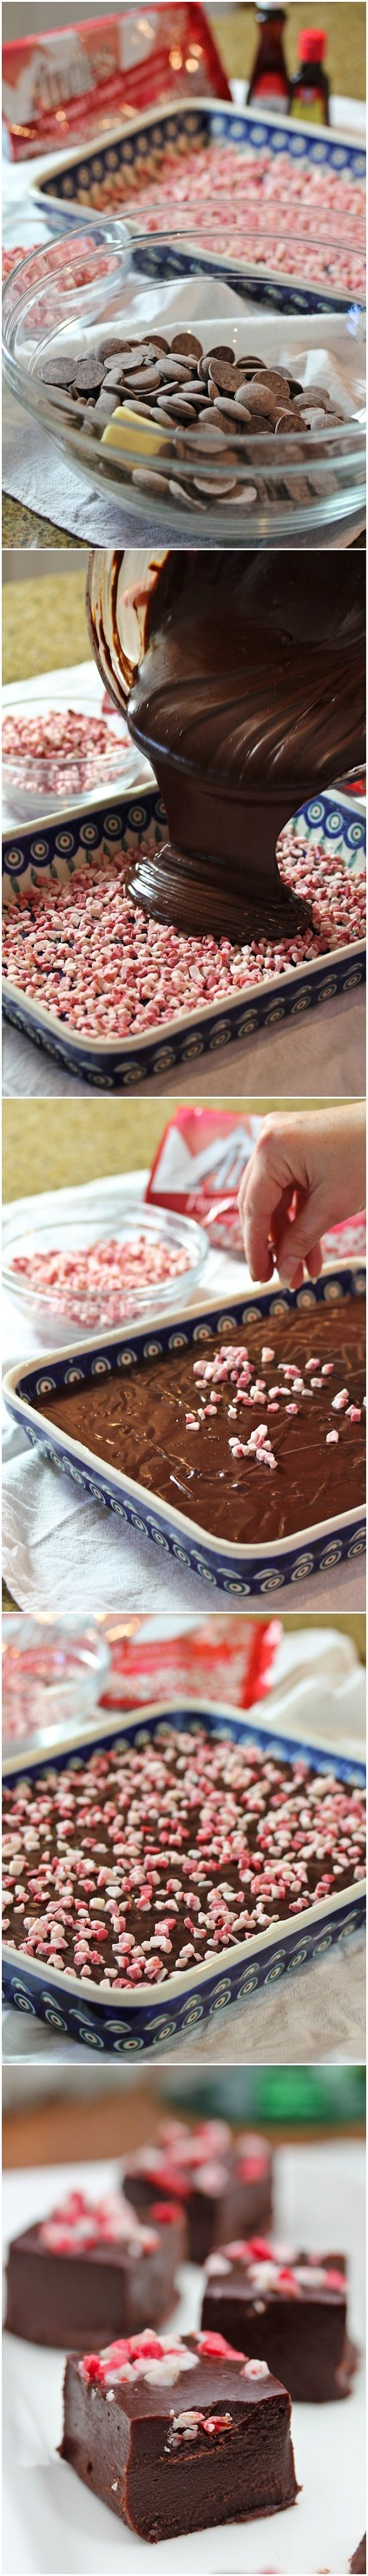 Peppermint Fudge.  Use Velata dark chocolate and peppermint mix-ins for high-quality ingredients.  www.carrietouchette.velata.us